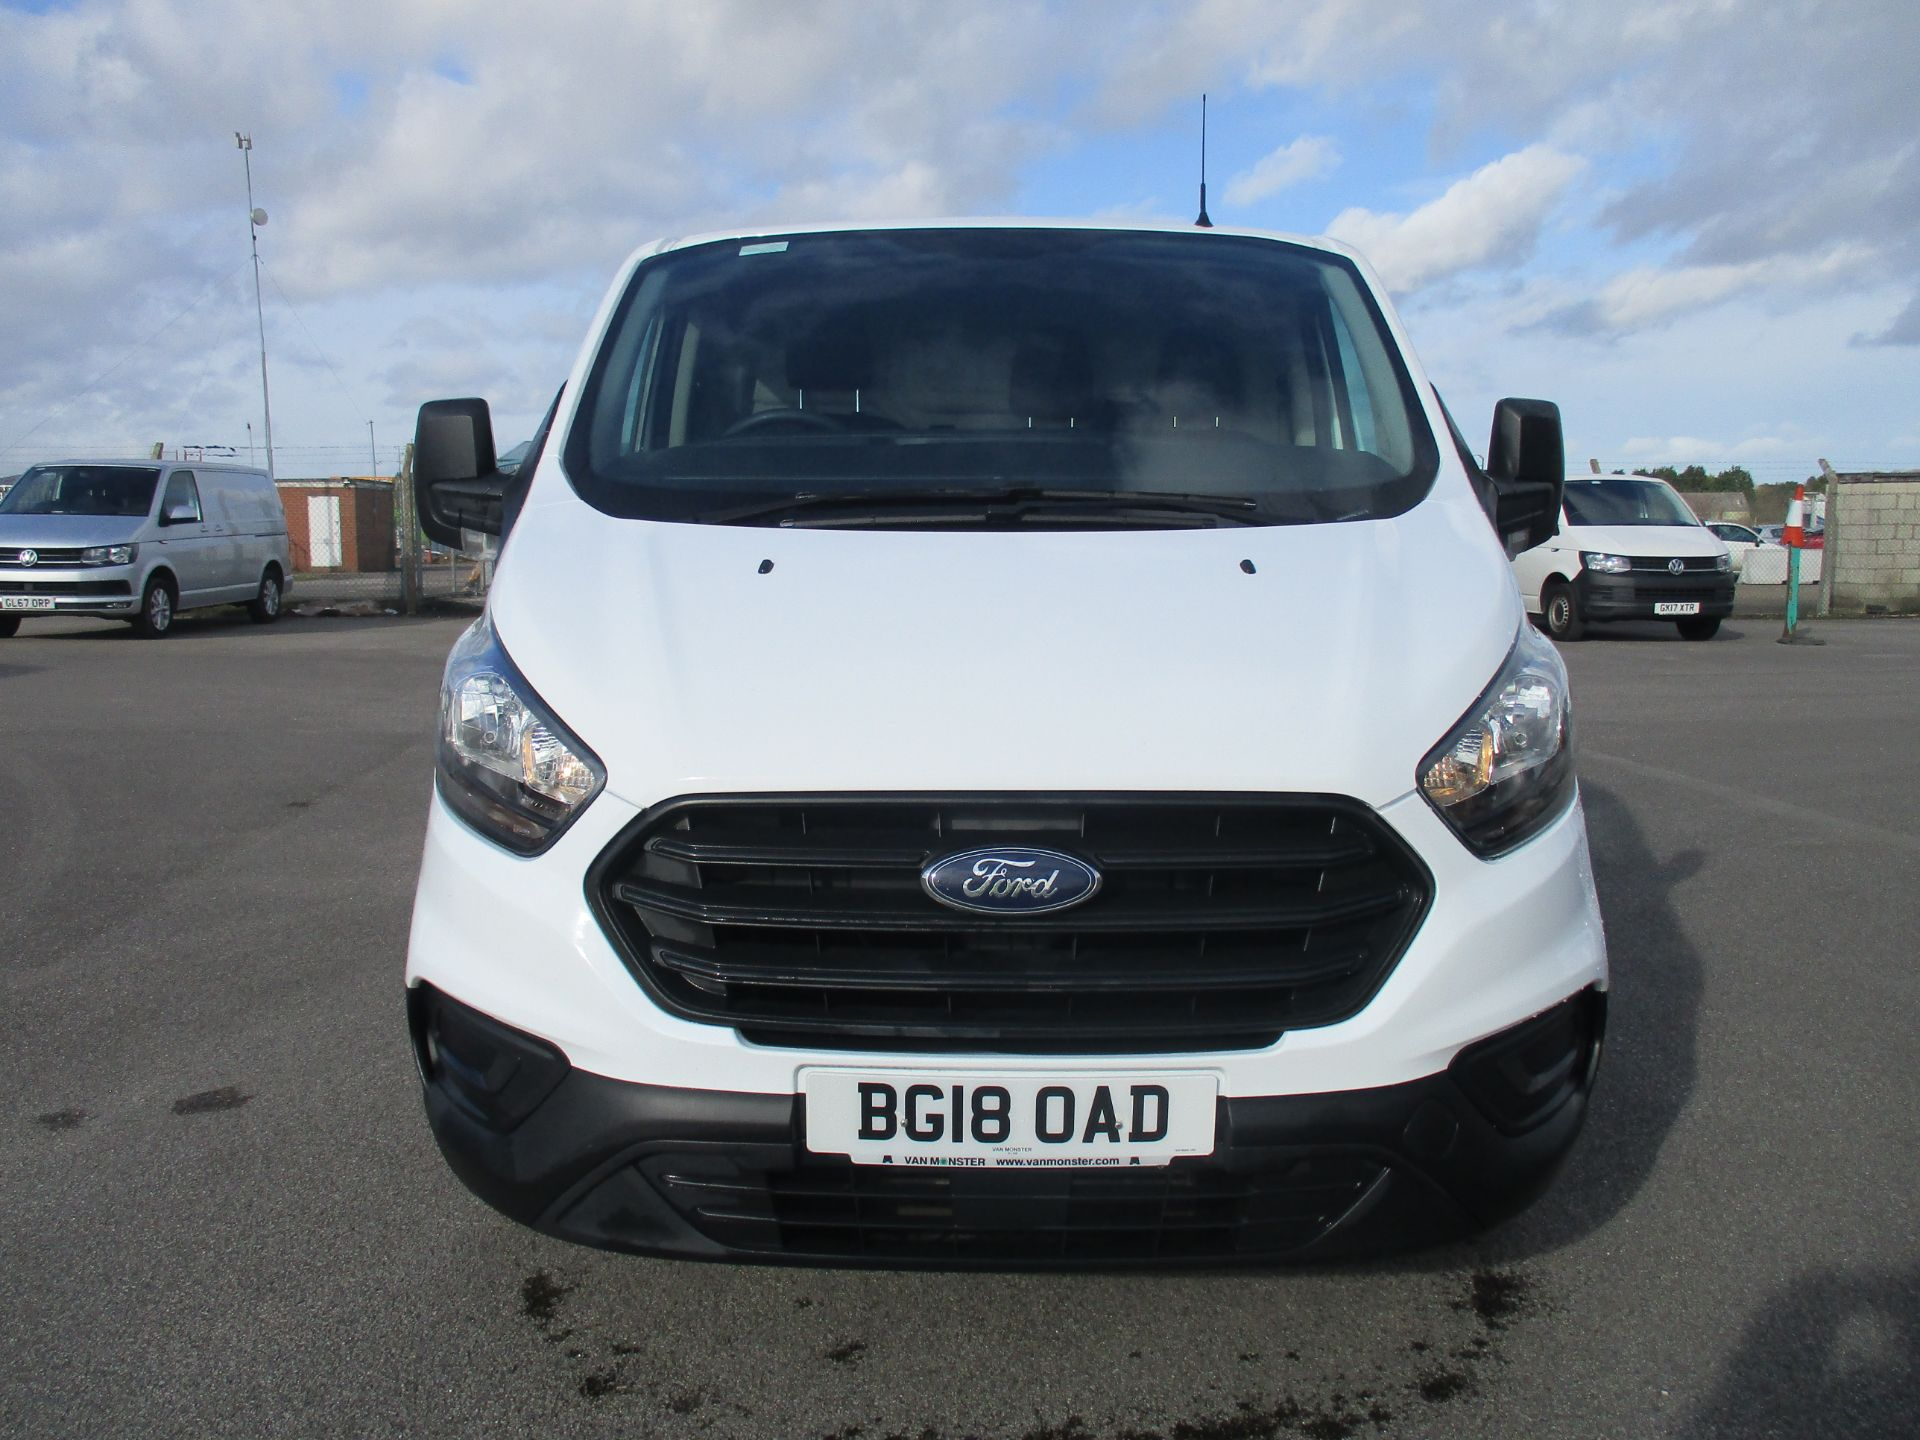 2018 Ford Transit Custom 300 L1 DIESEL FWD 2.0 TDCI 105PS LOW ROOF VAN EURO 6 (BG18OAD) Thumbnail 2